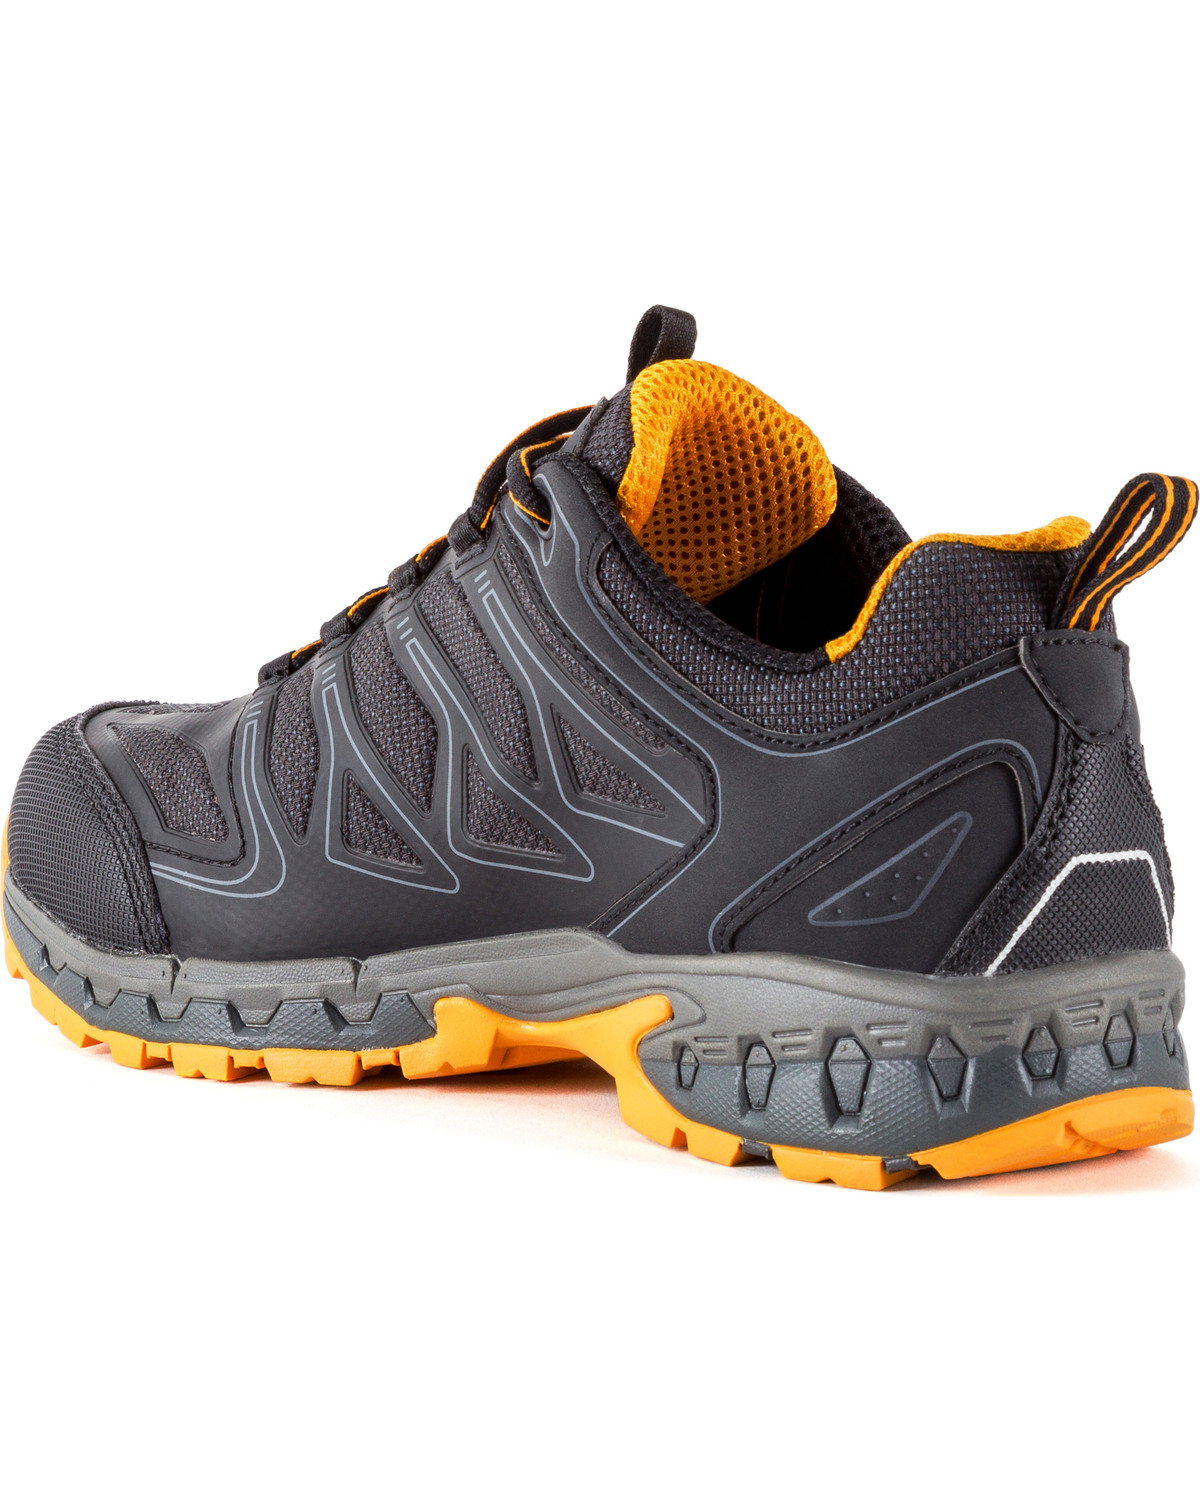 Dewalt Men S Boron Athletic Work Shoes Aluminum Toe